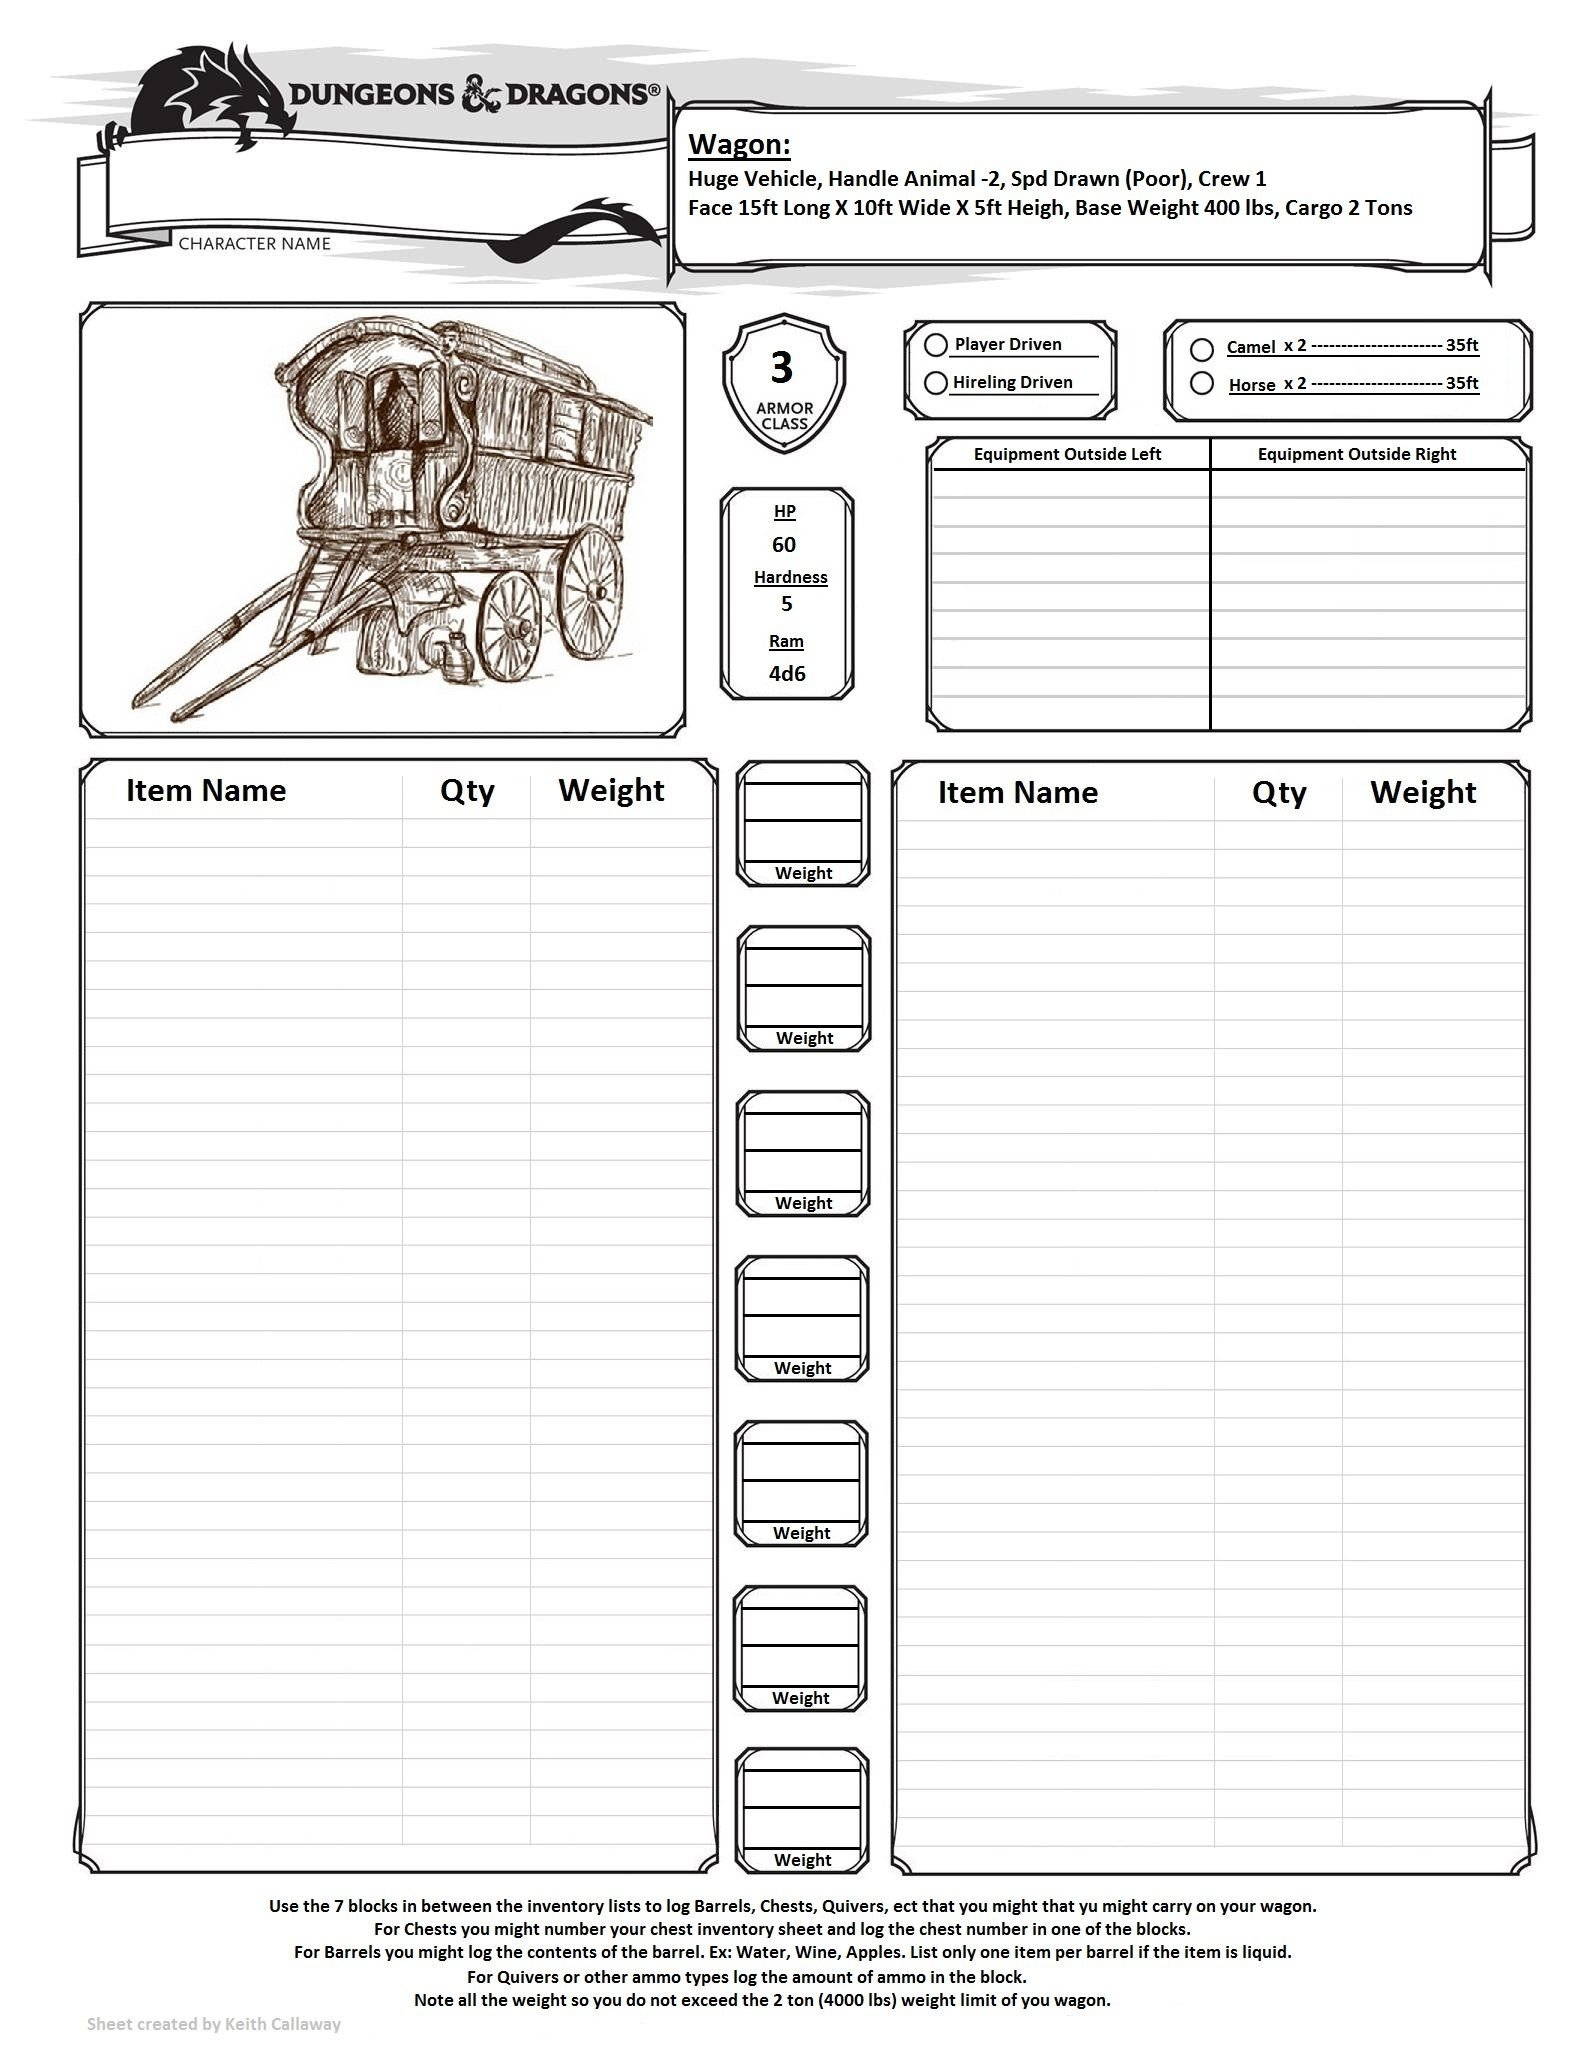 10 Lovable Dungeons And Dragons Campaign Ideas i made these sheets to organize my inventory when i play dd keith 2020